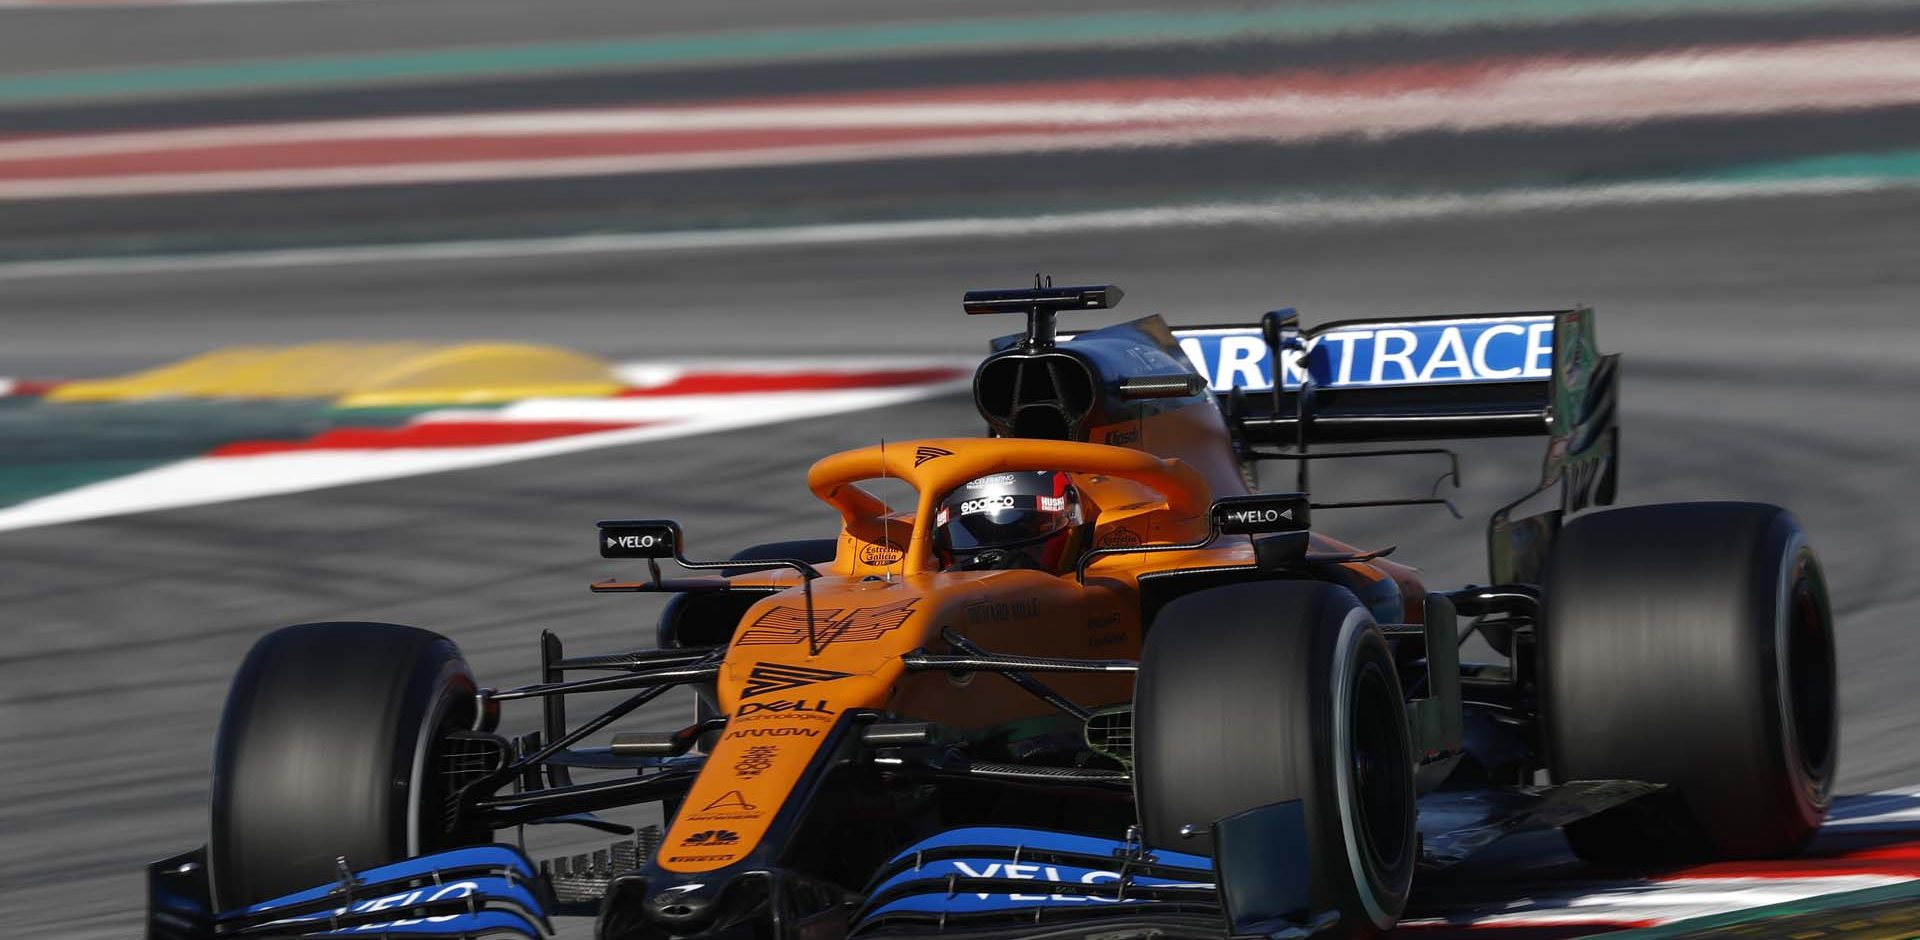 CIRCUIT DE BARCELONA-CATALUNYA, SPAIN - FEBRUARY 28: Carlos Sainz, McLaren MCL35 during the Barcelona February testing II at Circuit de Barcelona-Catalunya on February 28, 2020 in Circuit de Barcelona-Catalunya, Spain. (Photo by Glenn Dunbar / LAT Images)